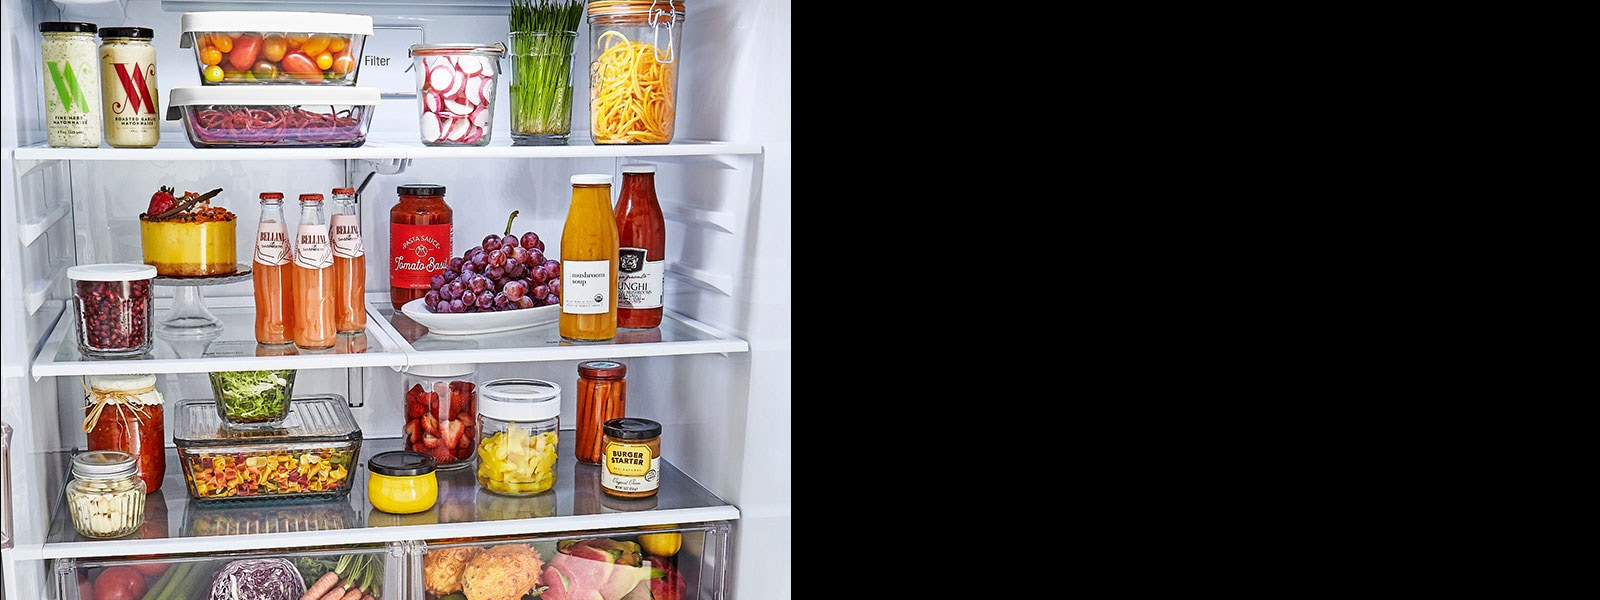 LG Stainless Steel Refrigerators: French Door & More | LG USA